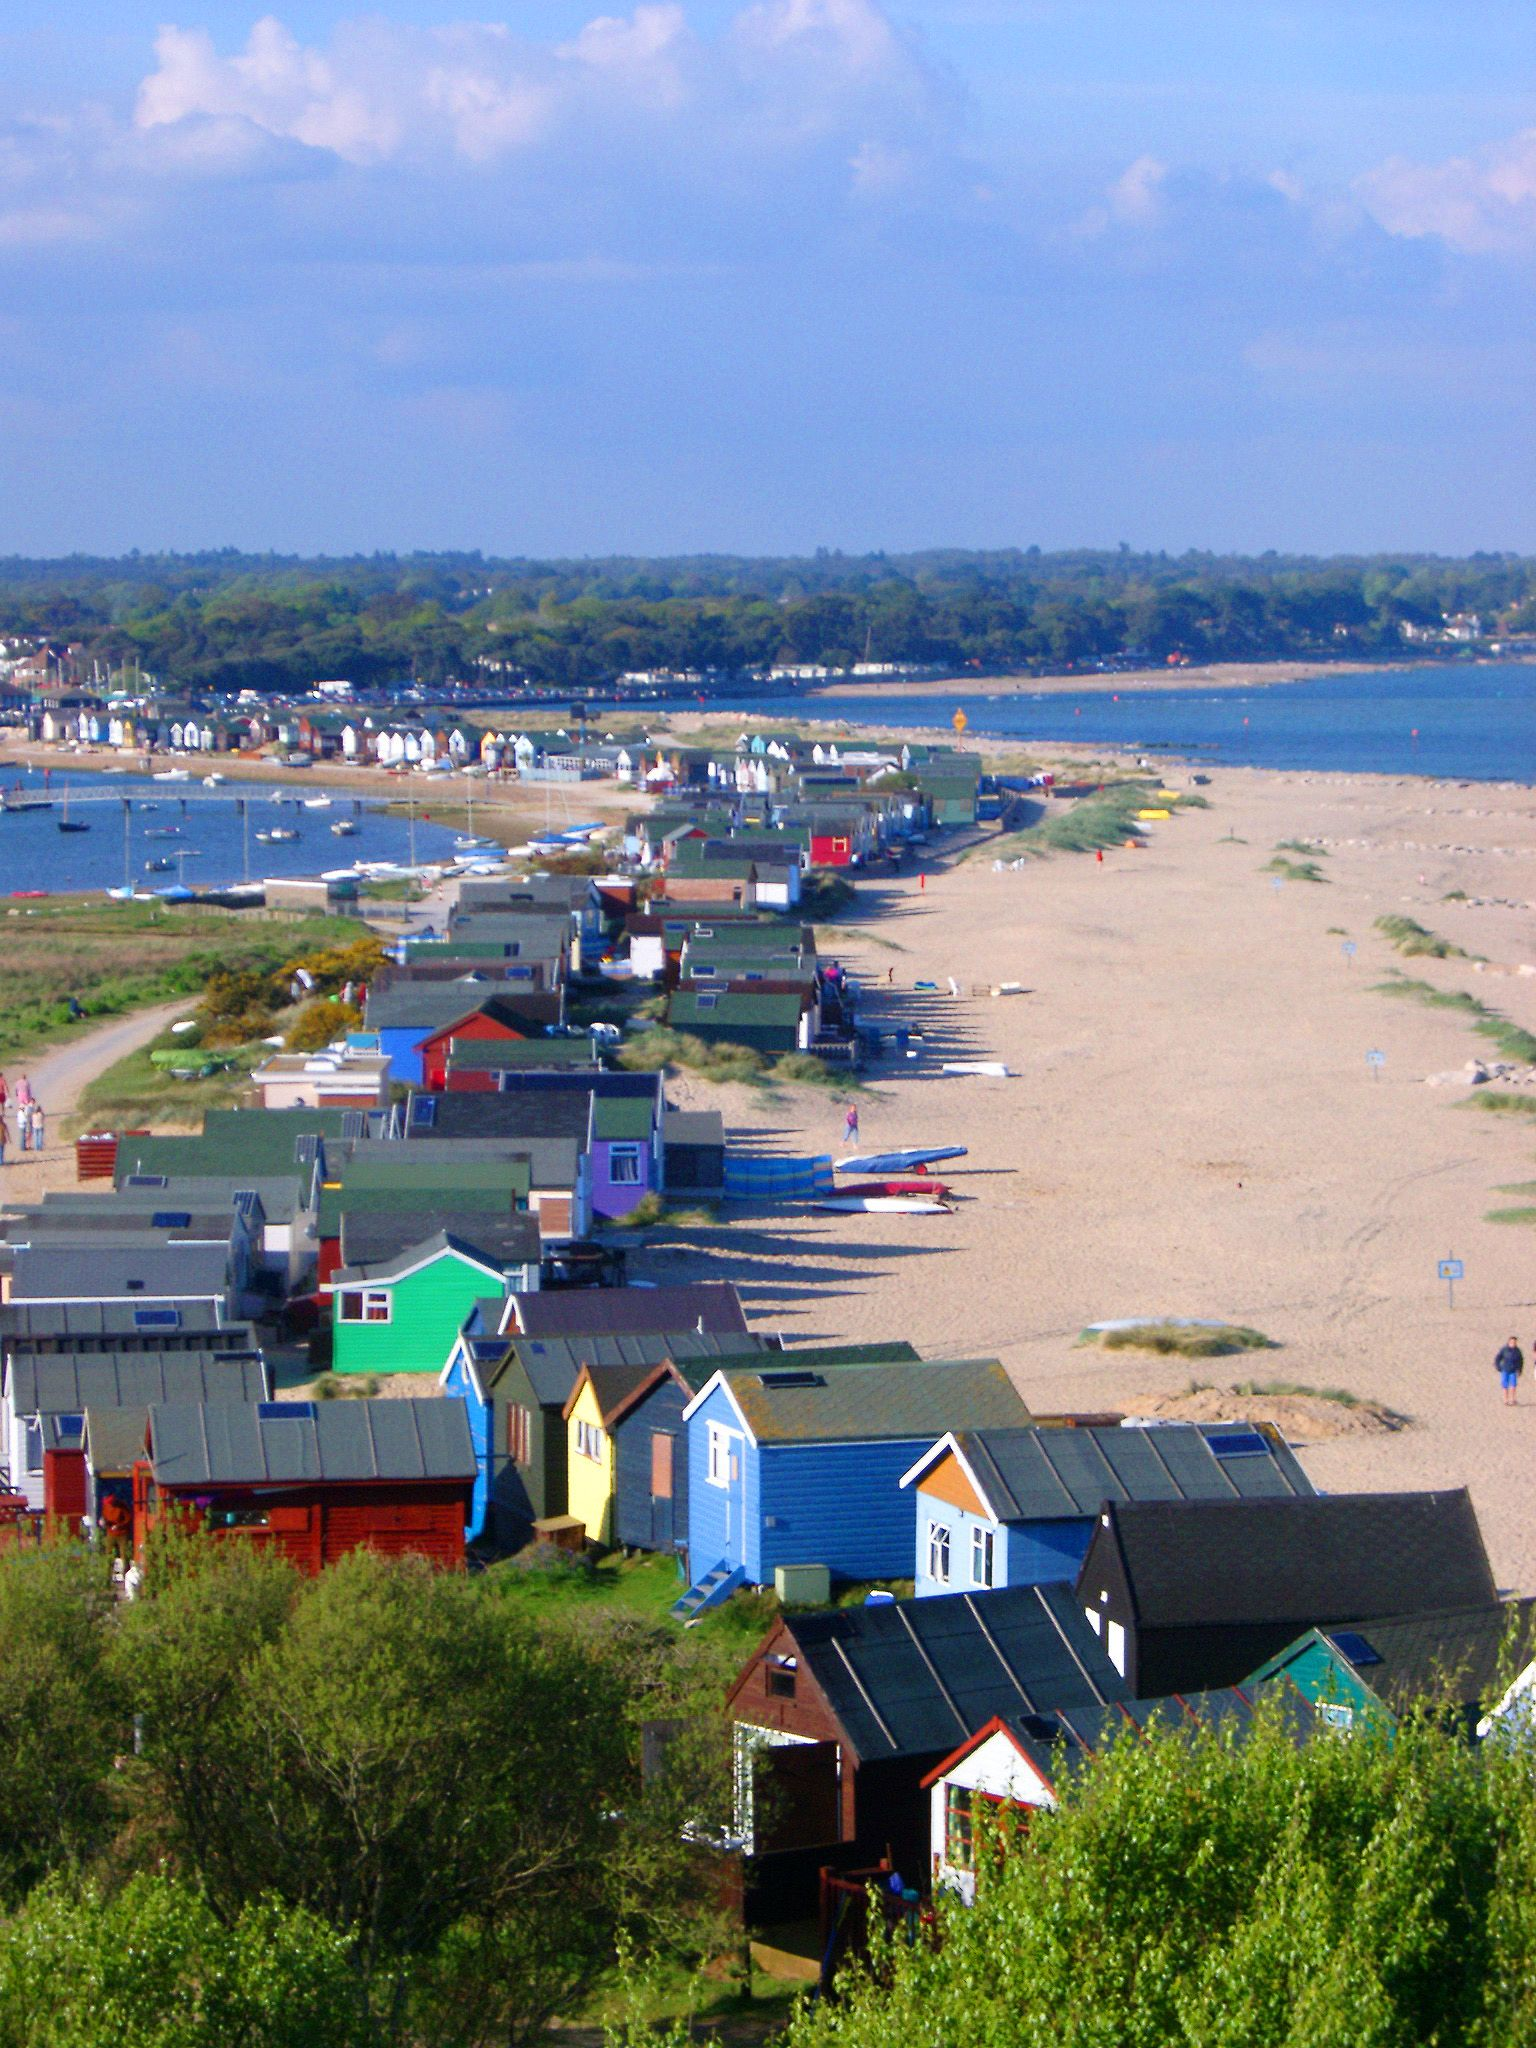 Mudeford Spit and beach huts, near Christchurch, Dorset